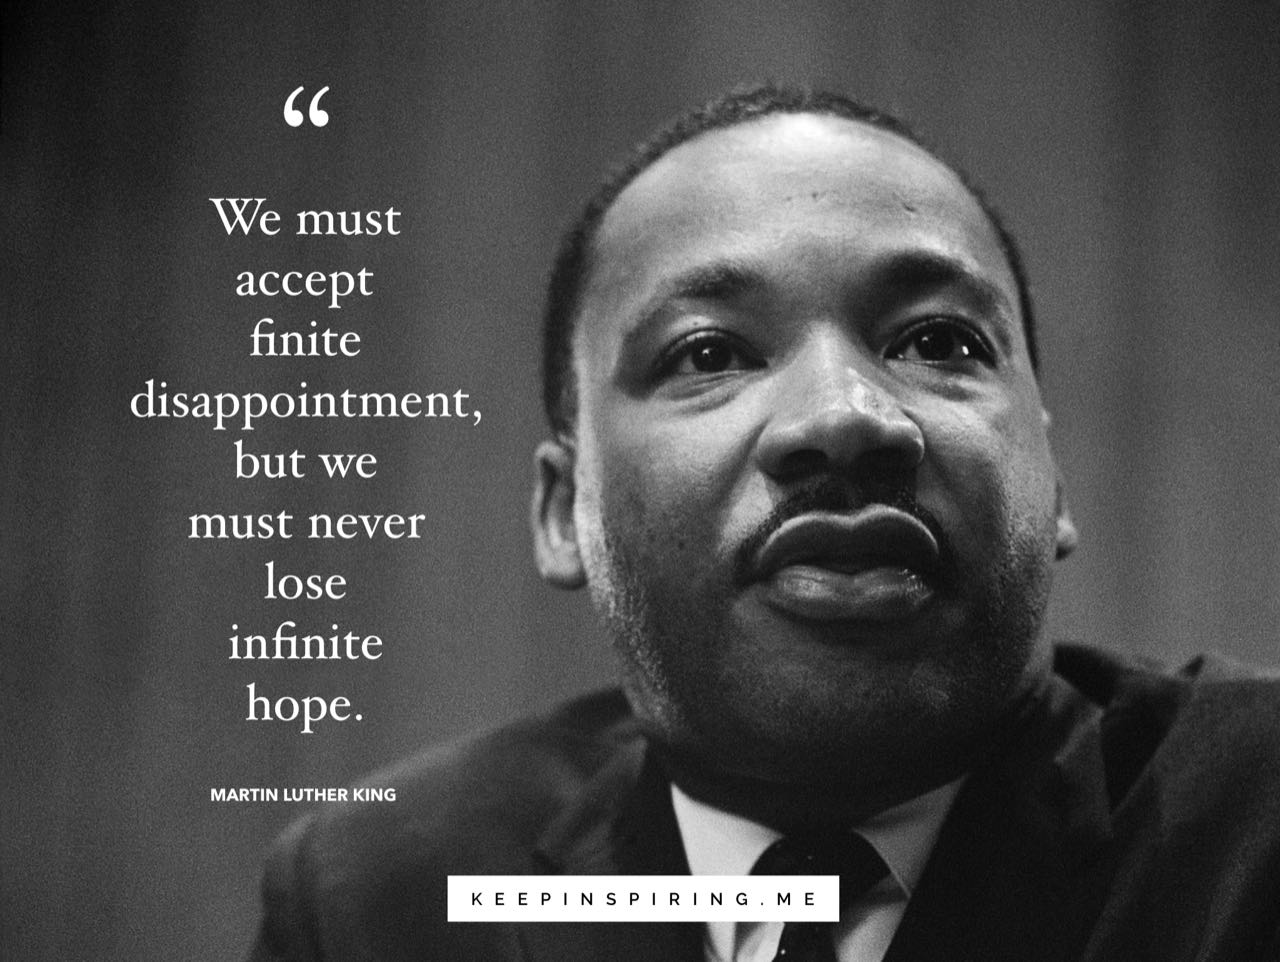 MLK hope quote